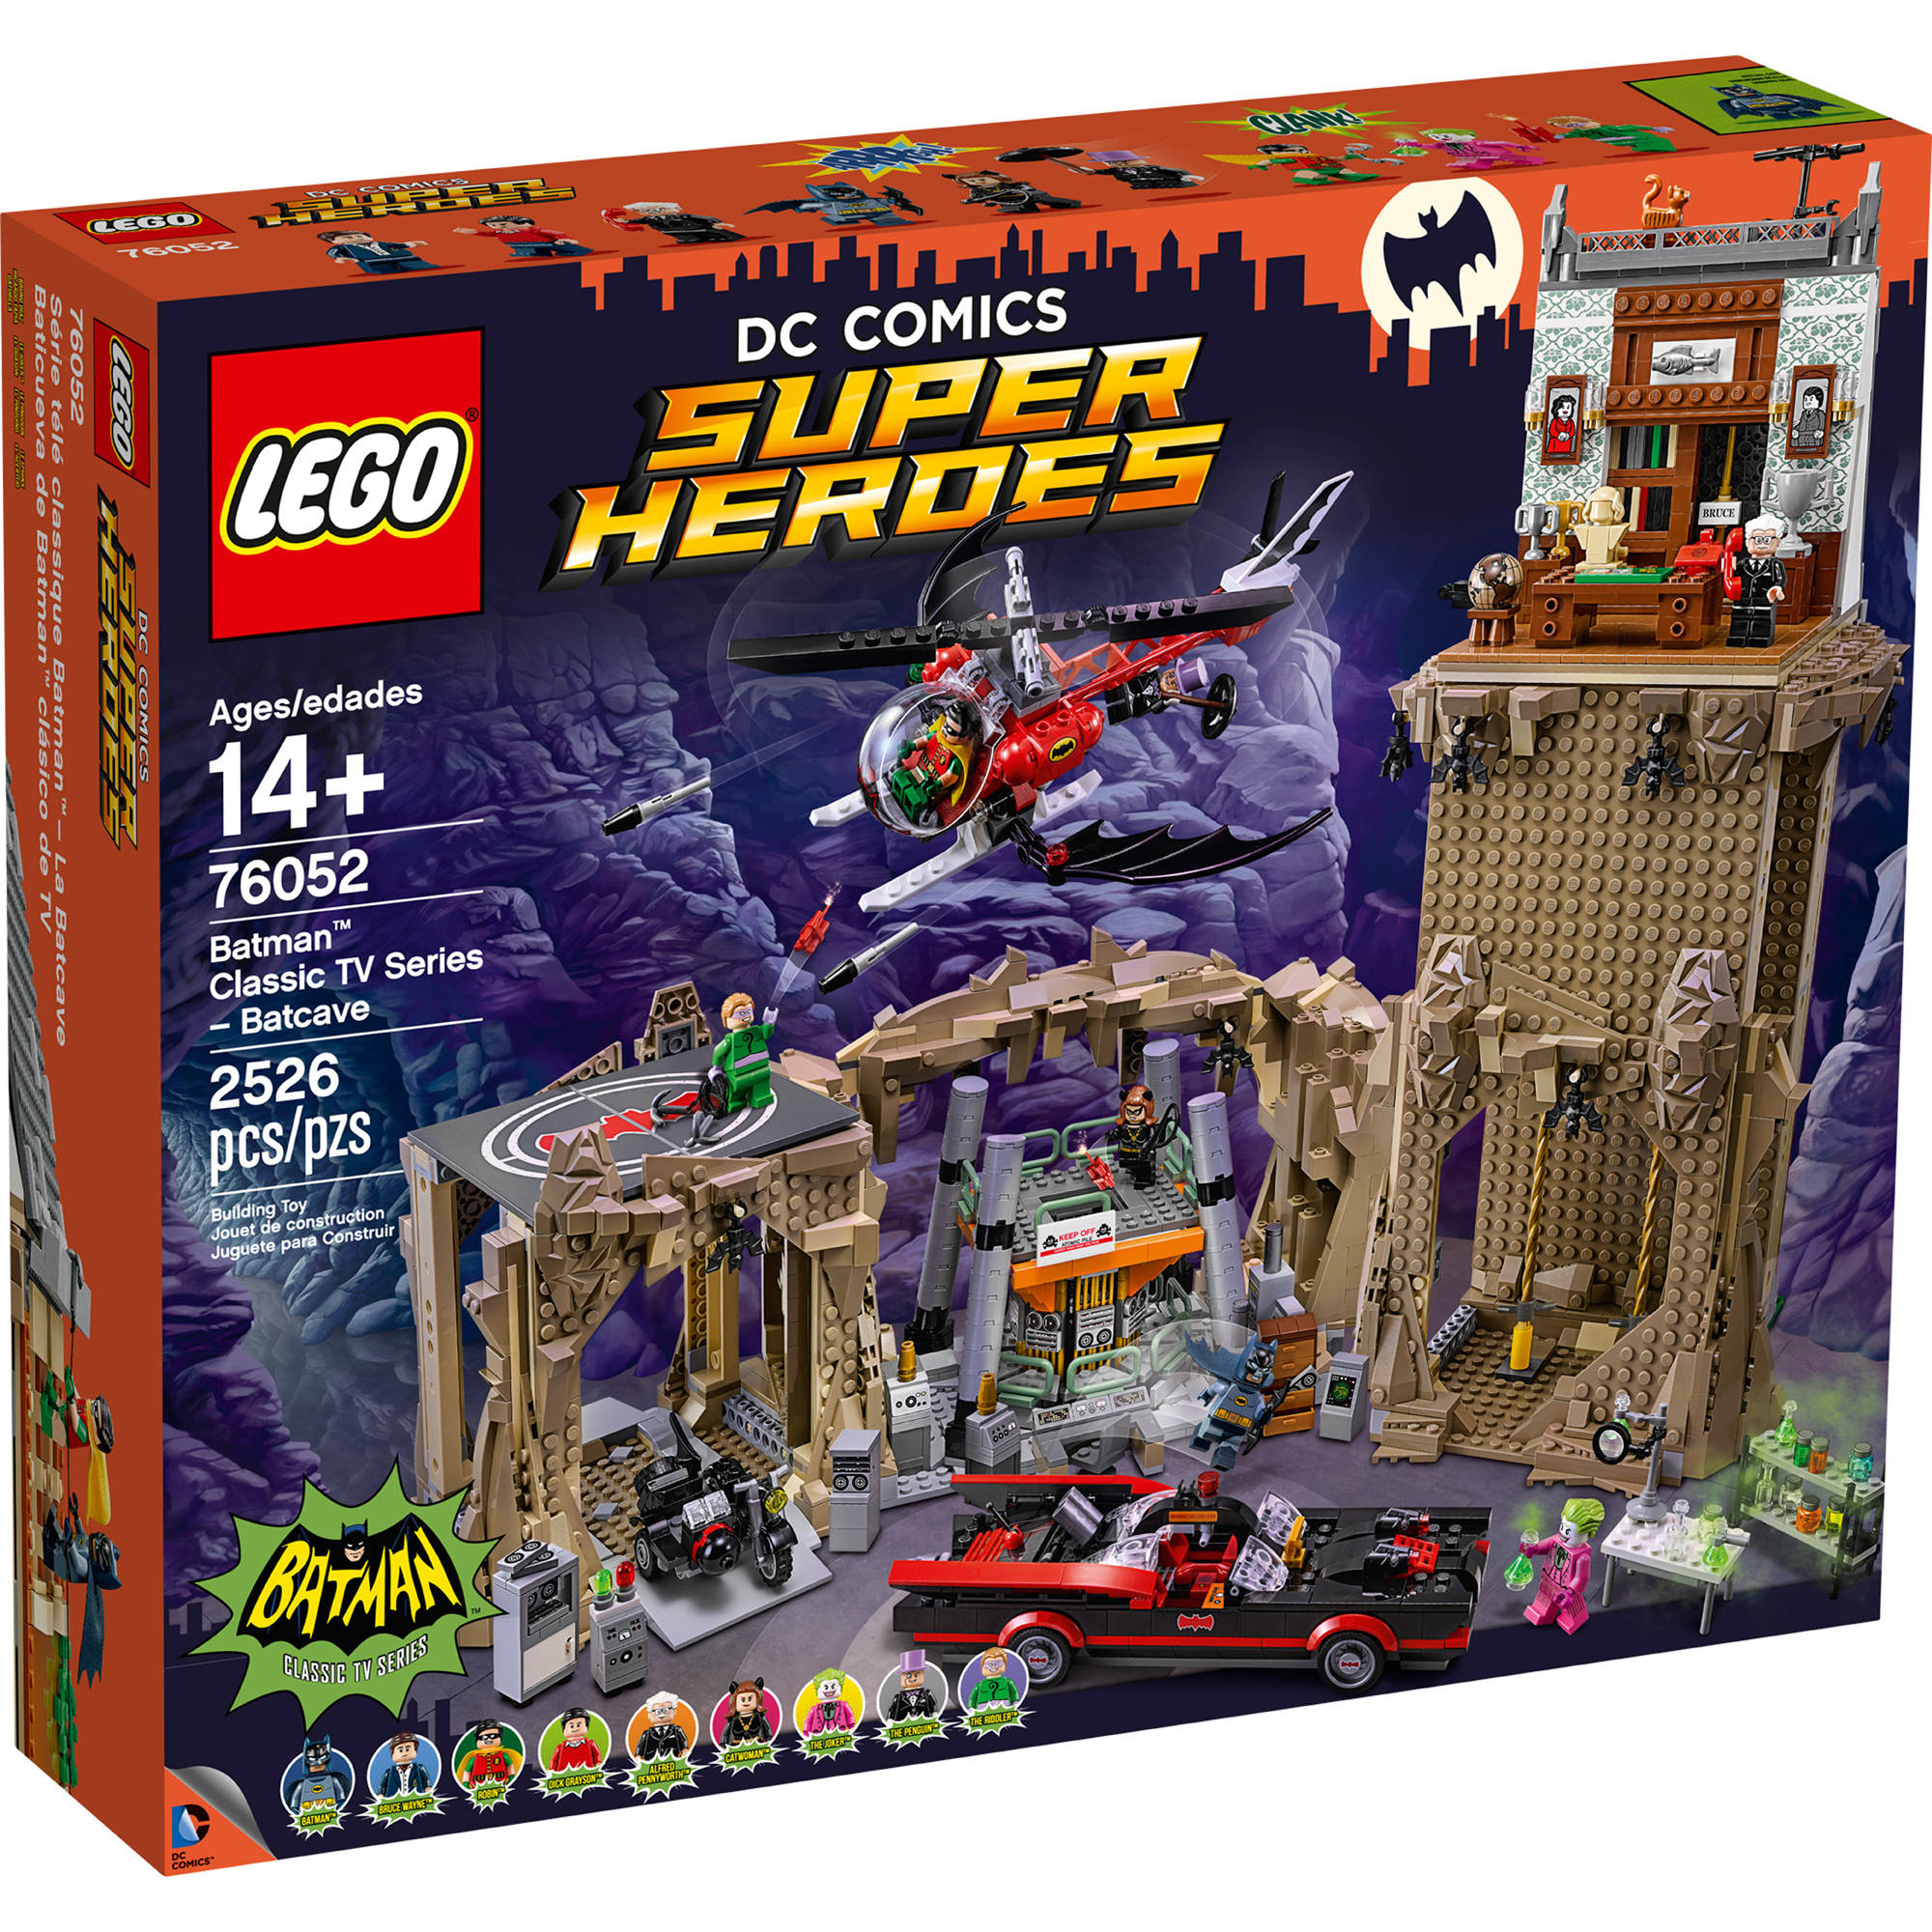 LEGO Super Heroes Batman Classic TV Series-Batcave 76052